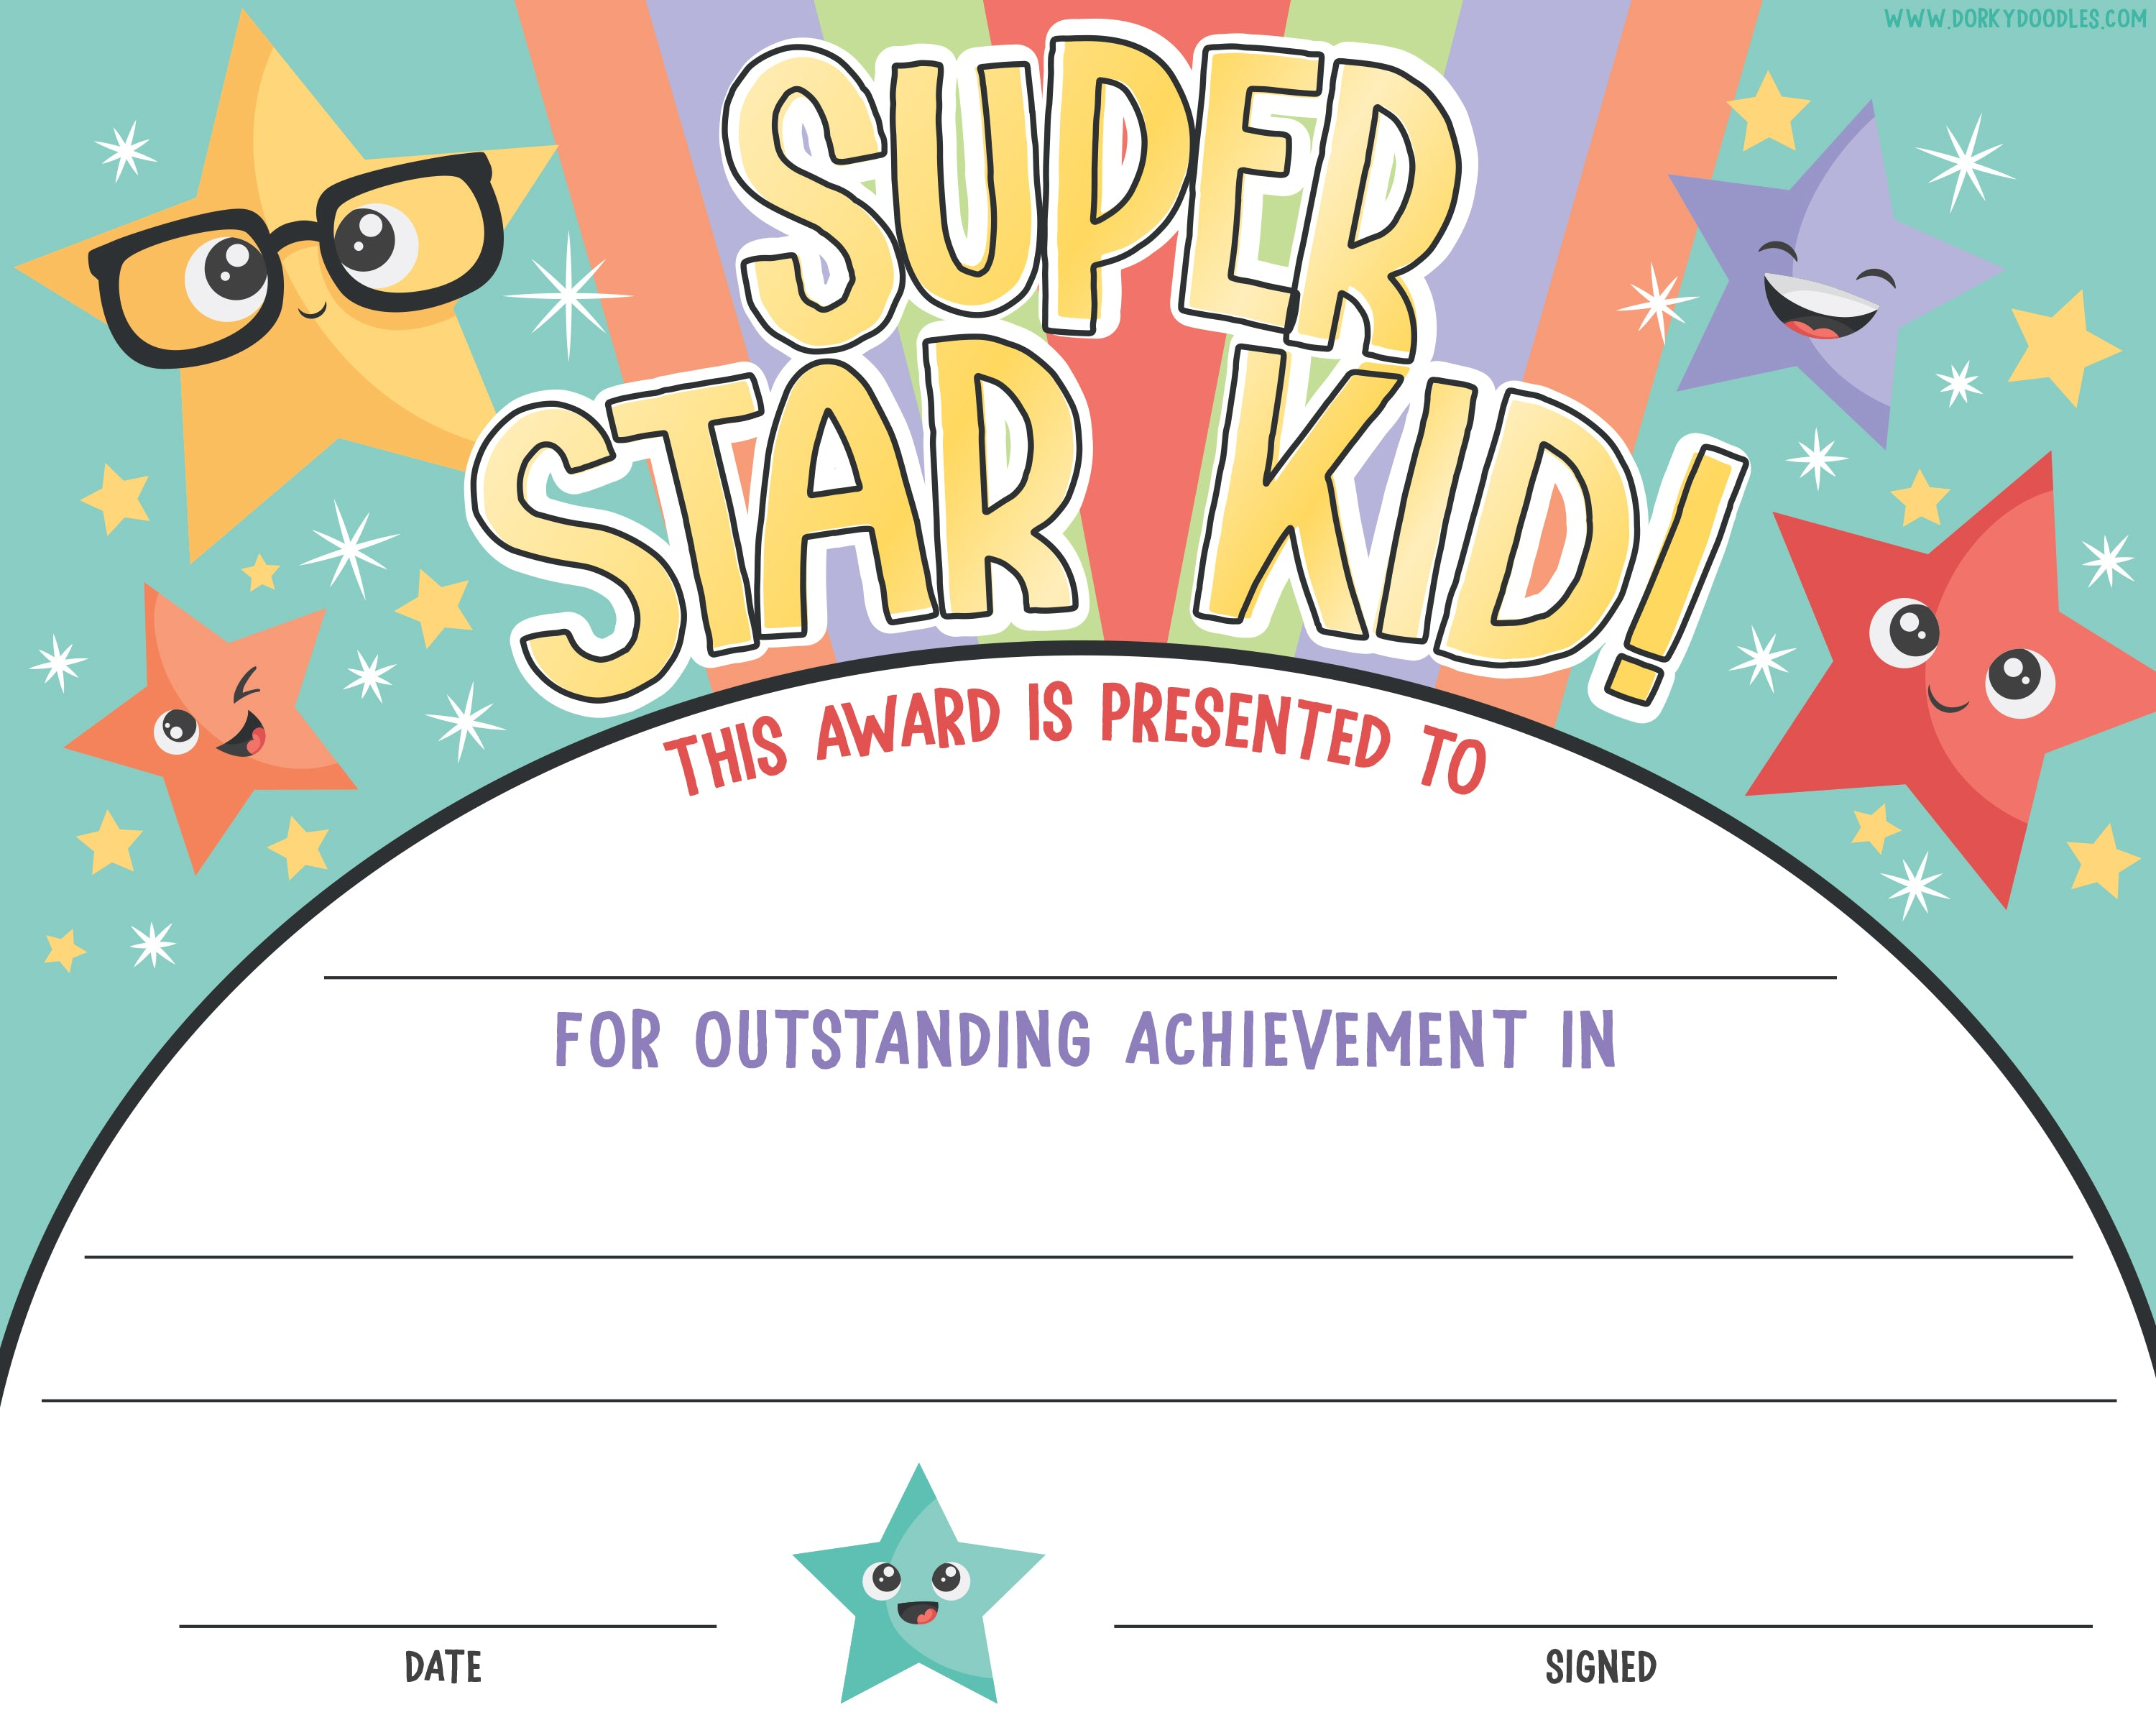 graphic about Free Printable Certificates for Kids named Printable Award Certification for Little ones Dorky Doodles